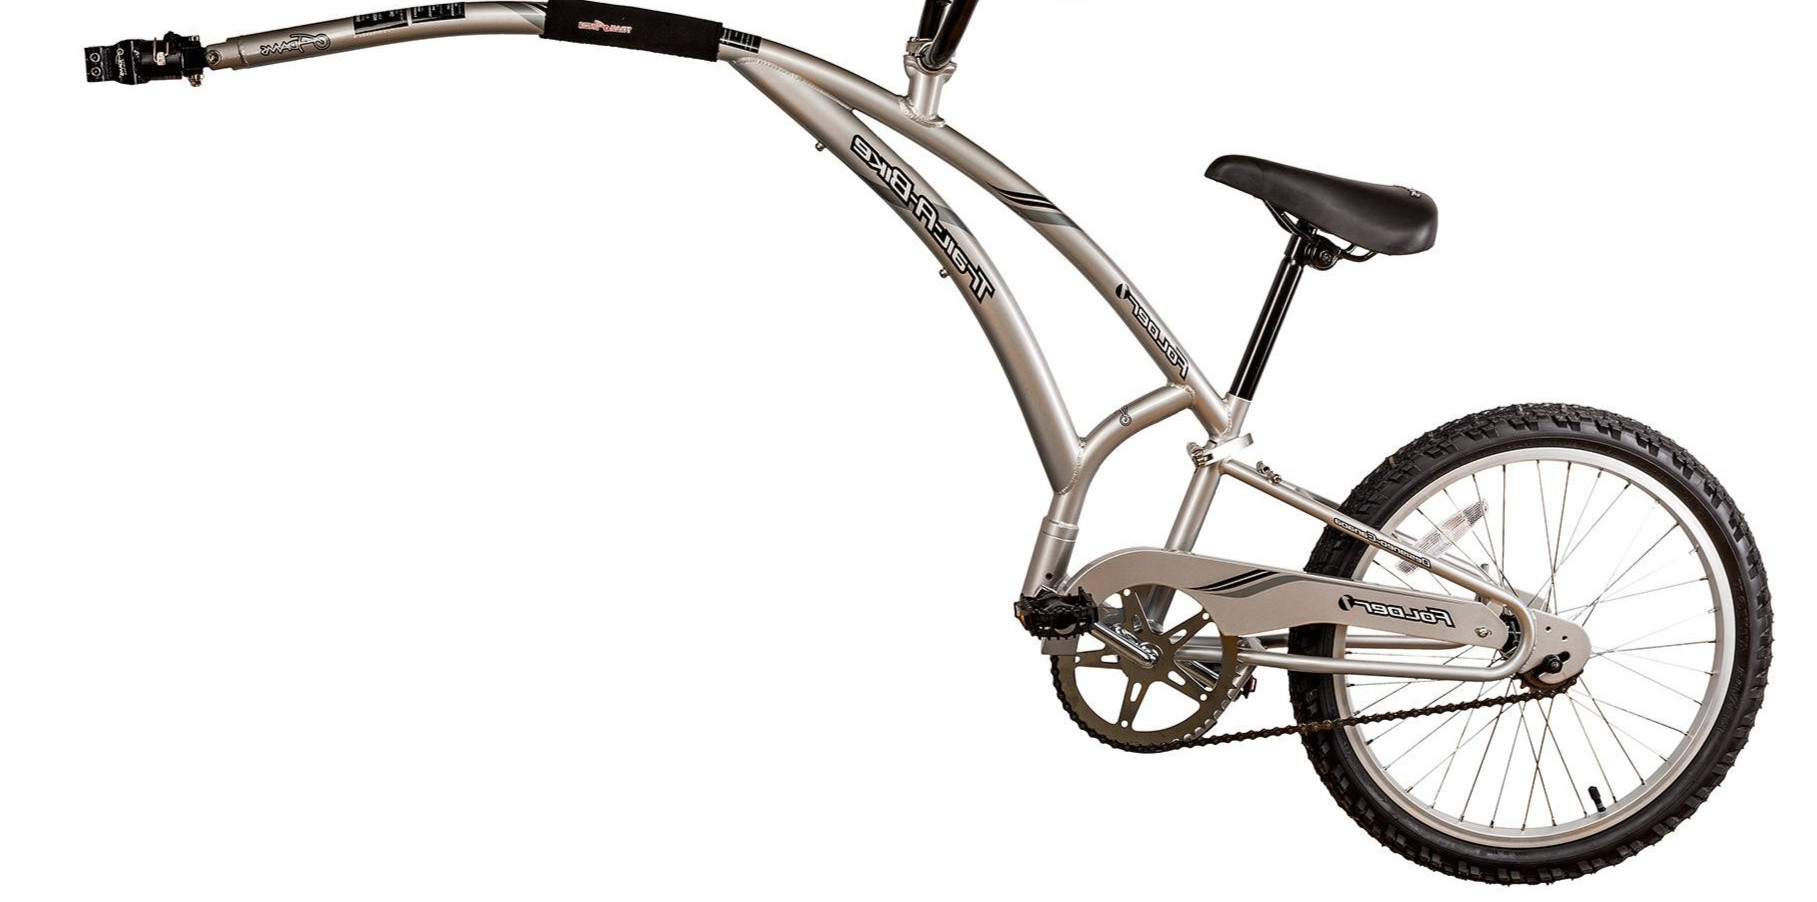 The skeletal element at the center is a child's Trail-A-Bike frame, stripped of paint, rusted and reconfigured.